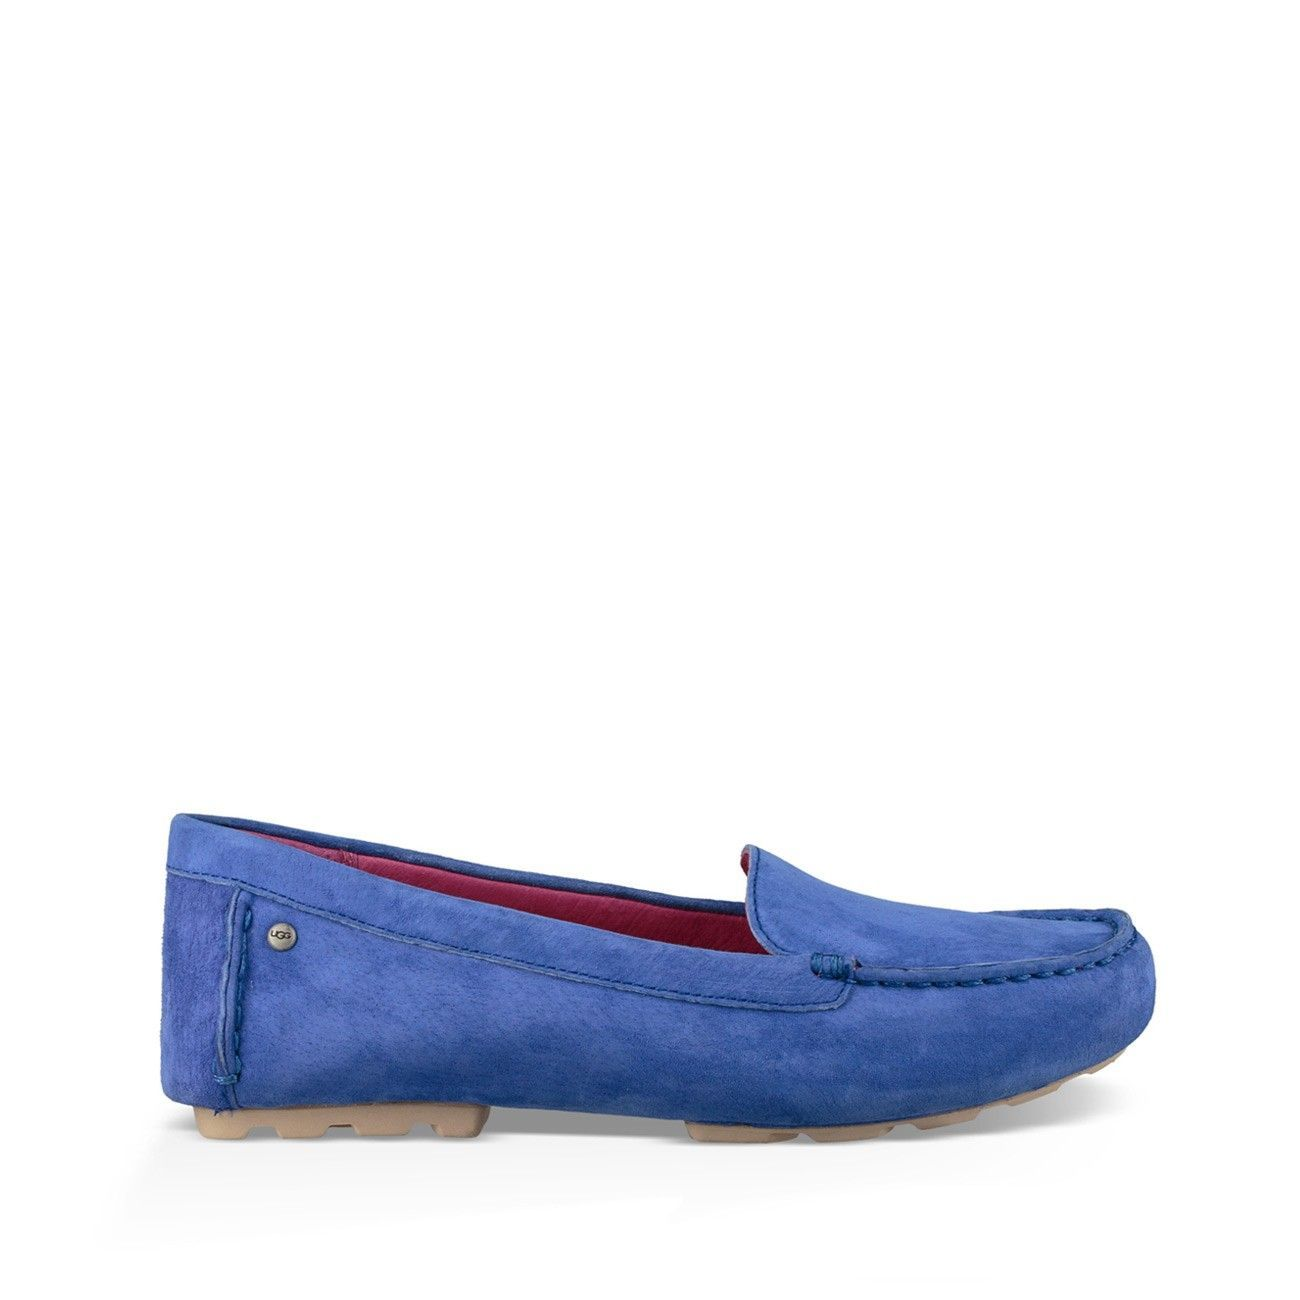 7ea025683 Milana Water-resistant - Azul-6   Products   Uggs, Shoes y Loafer shoes